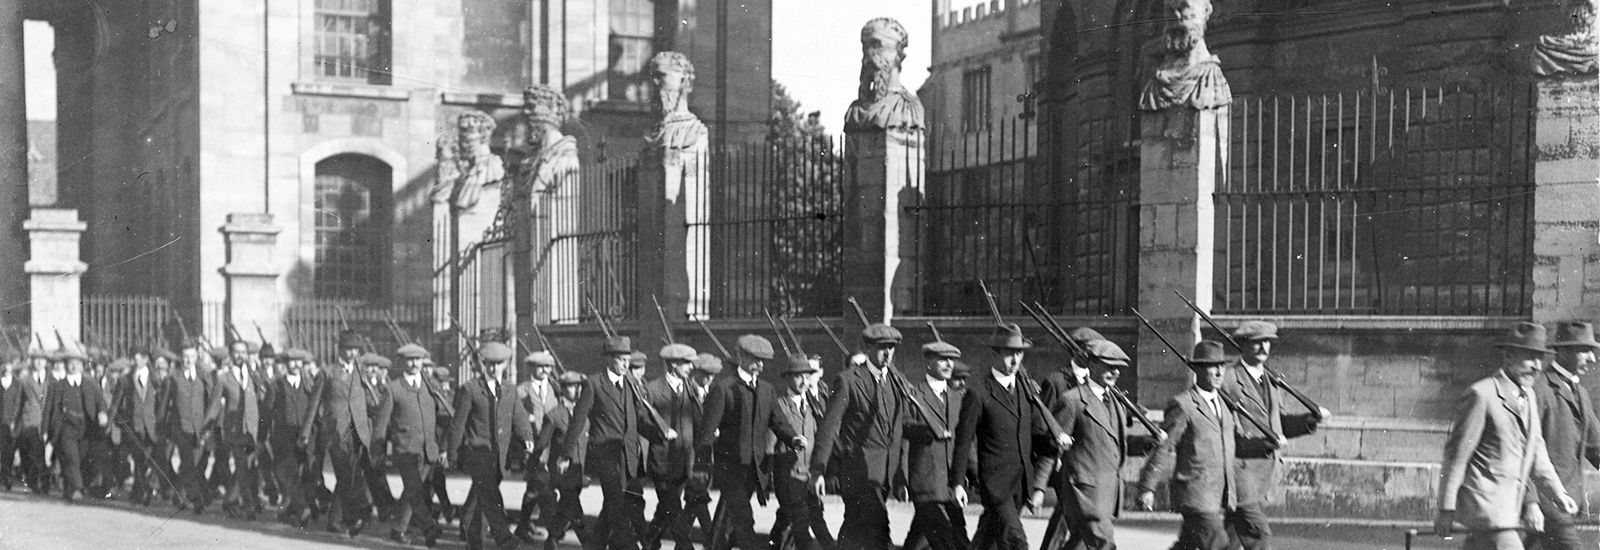 A black-and-white photo of Godley's Own Oxford volunteers marching past the Sheldonian Theatre